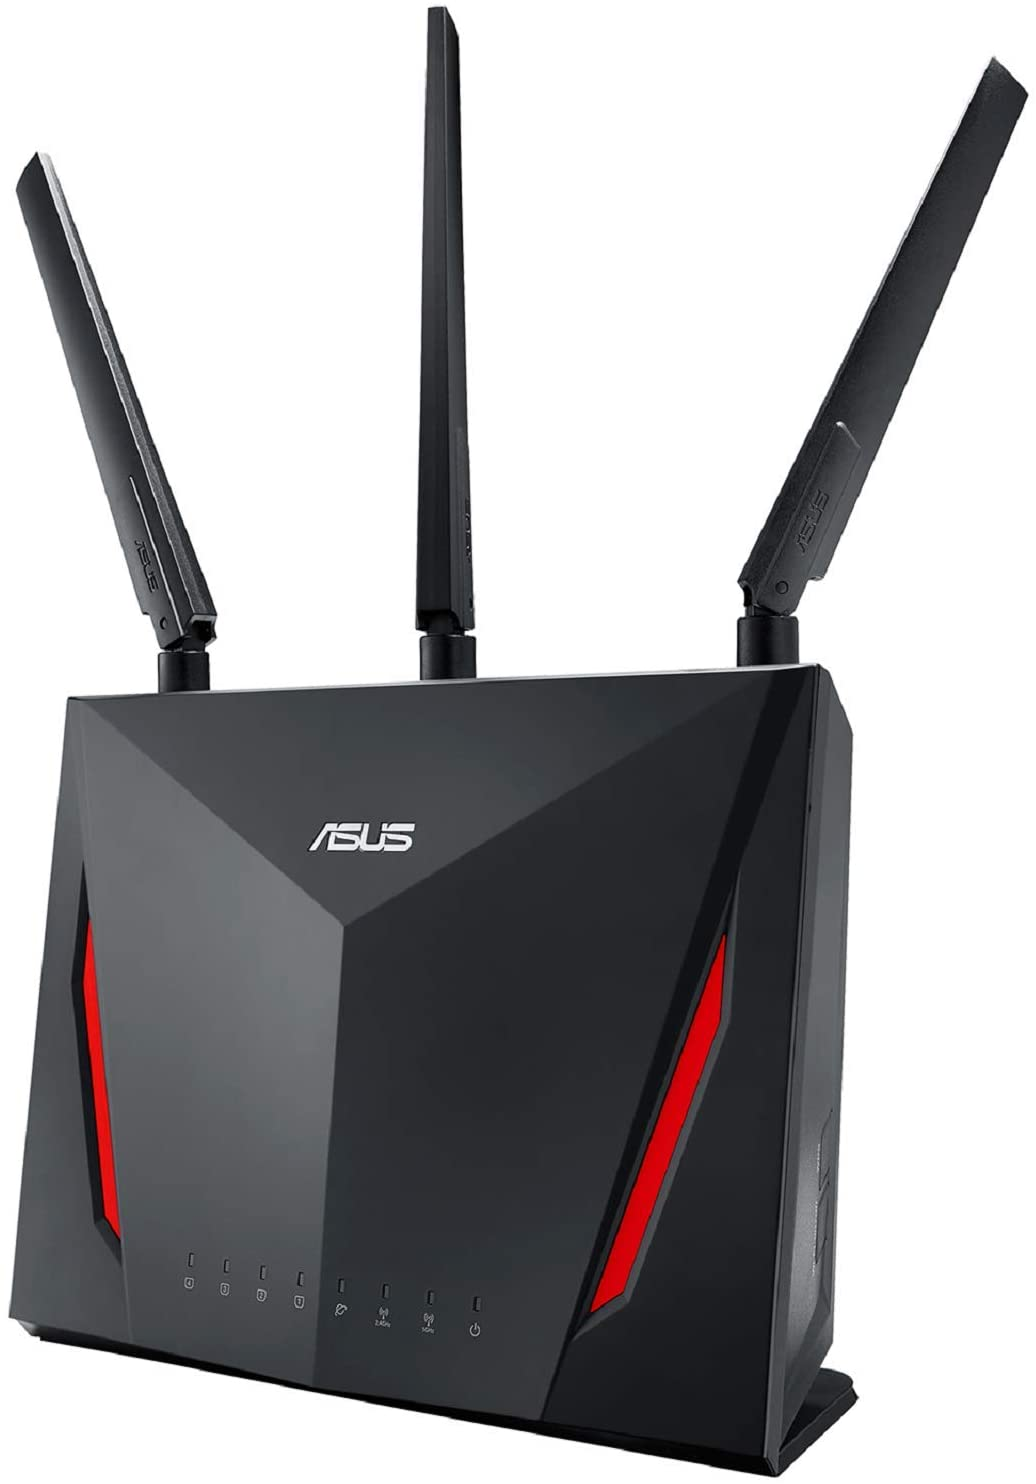 ASUS AC2900 WiFi Dual-band Gigabit Wireless Router with 1.8GHz Dual-core Processor and AiProtection Network Security Powered by Trend Micro, AiMesh Whole Home WiFi System Compatible (RT-AC86U)